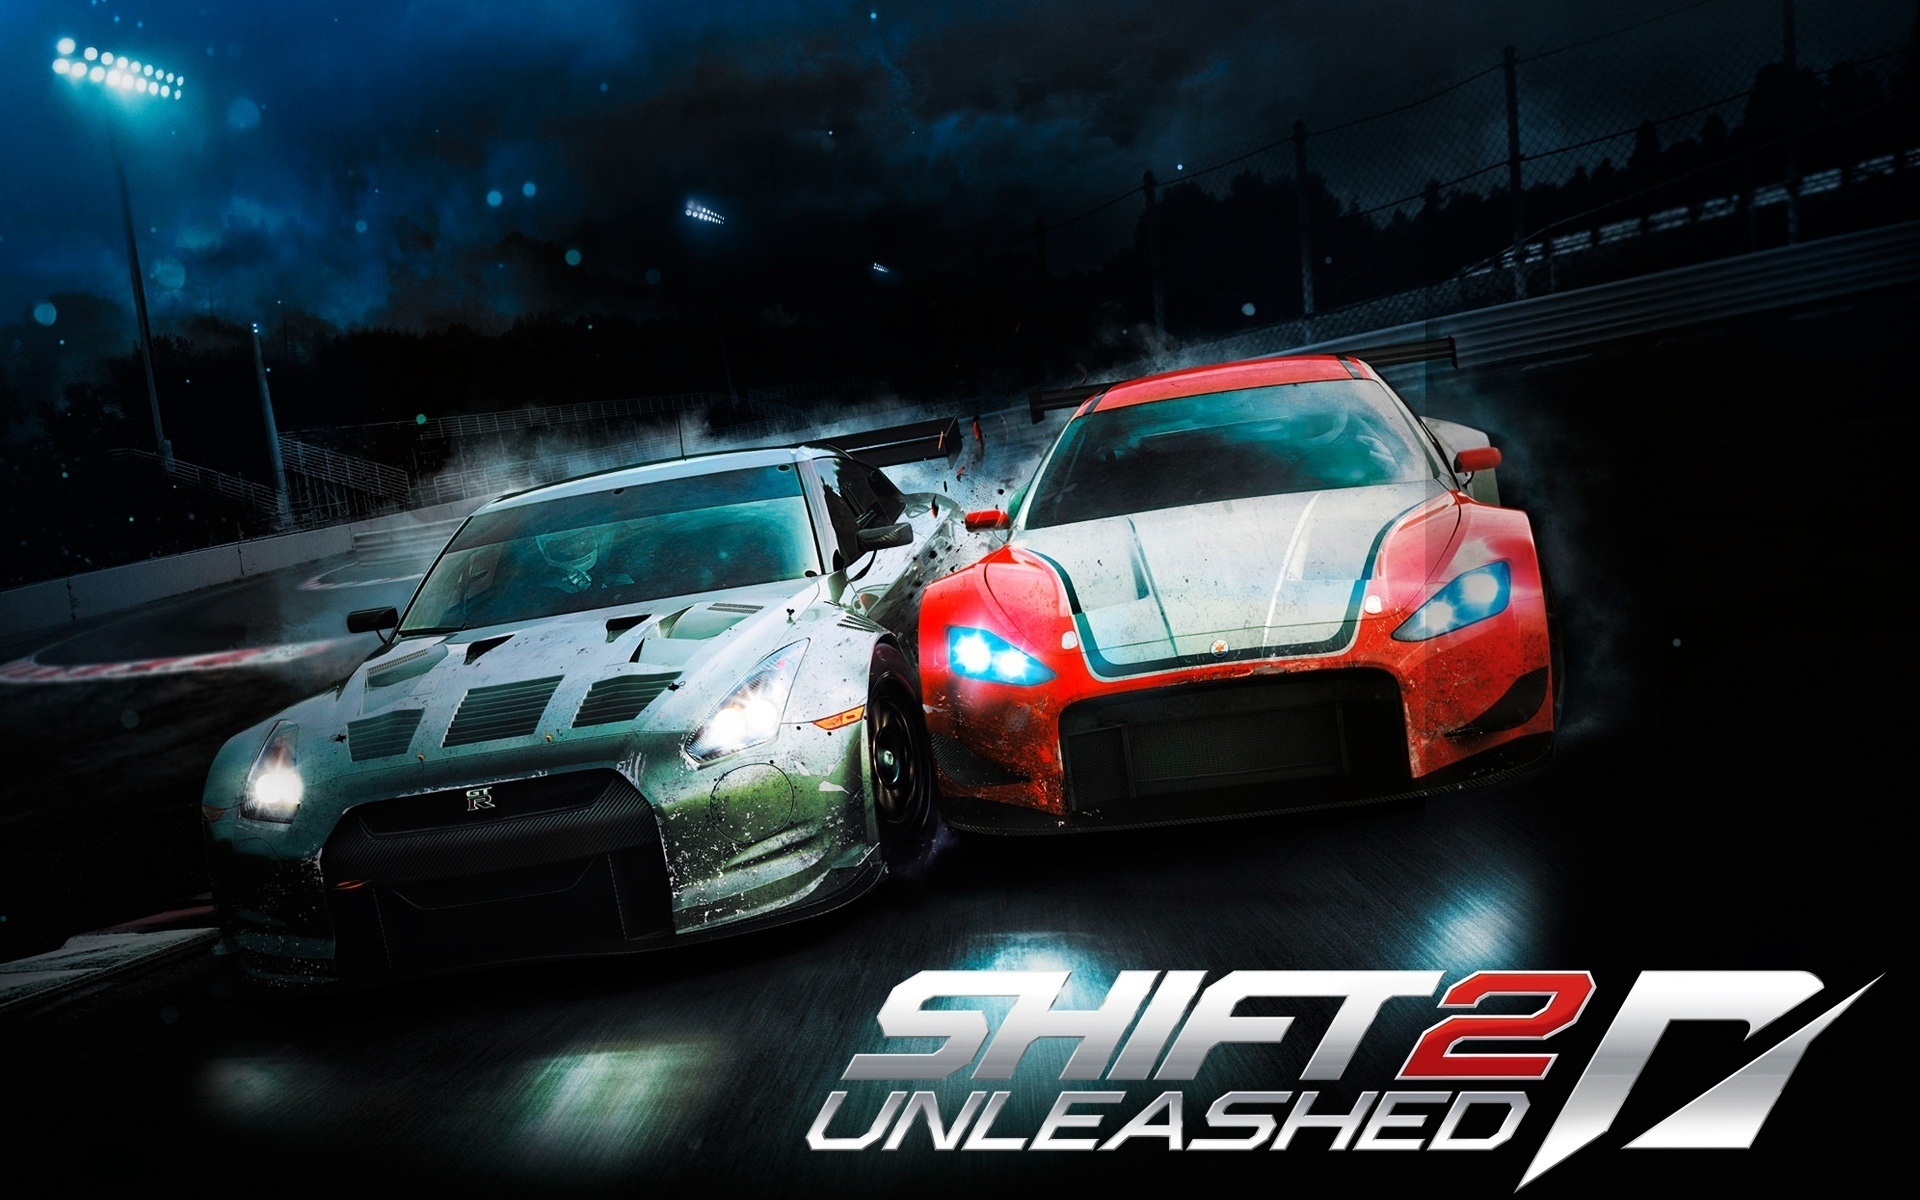 Shift 2 Unleashed Need for Speed Racing Game Wallpapers ...